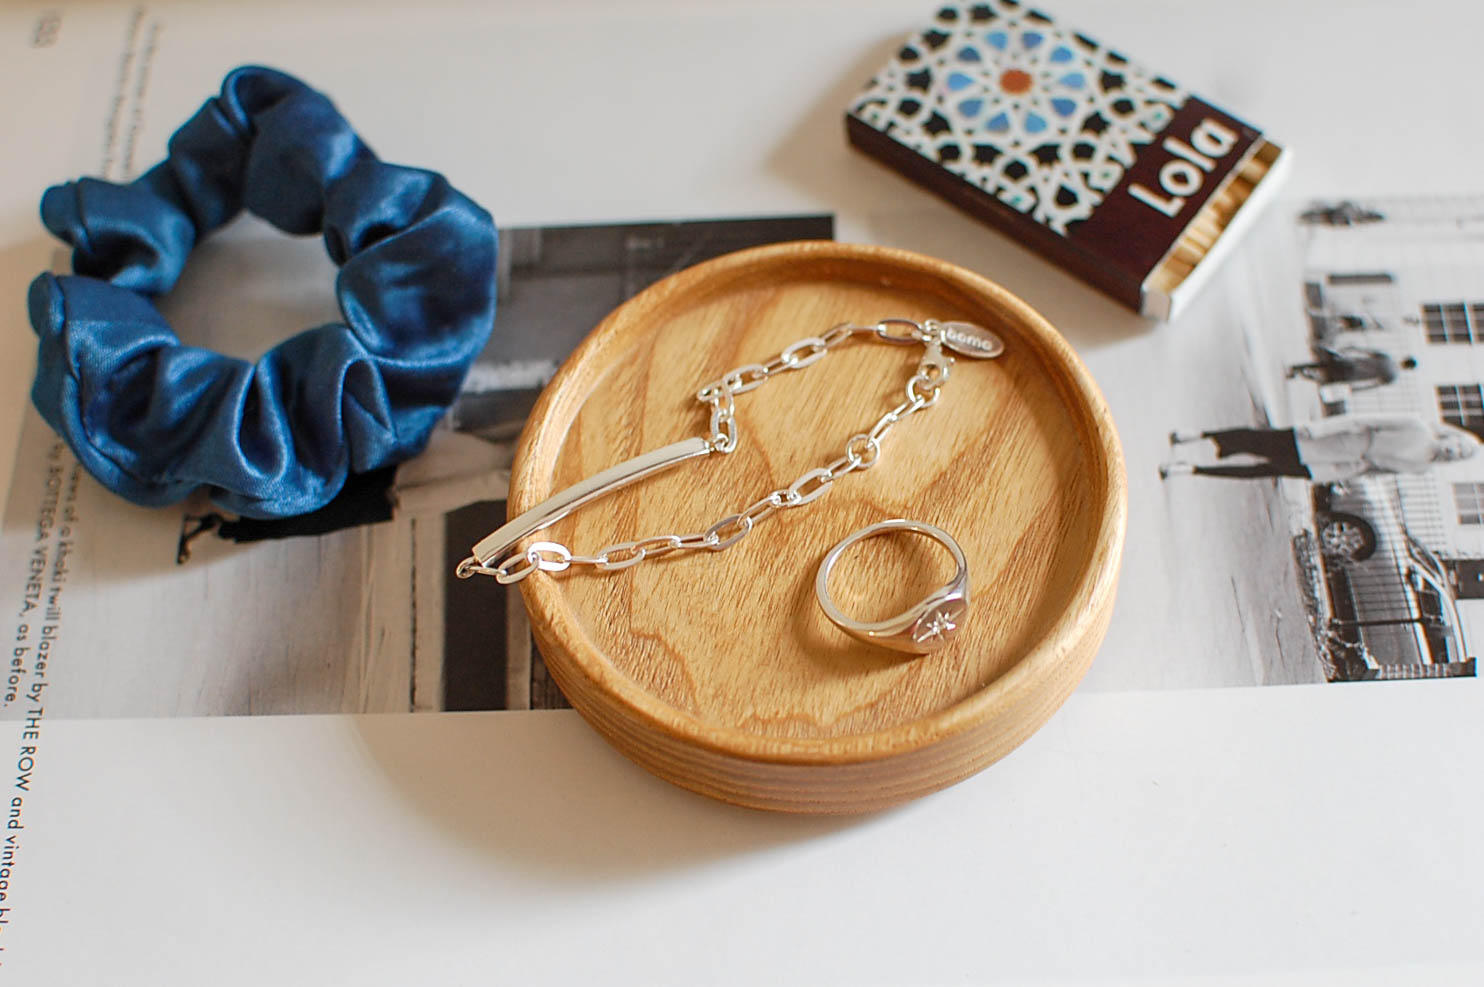 Who Made My Jewelry: Boma Jewelry is Sustainable, Ethical and Affordable